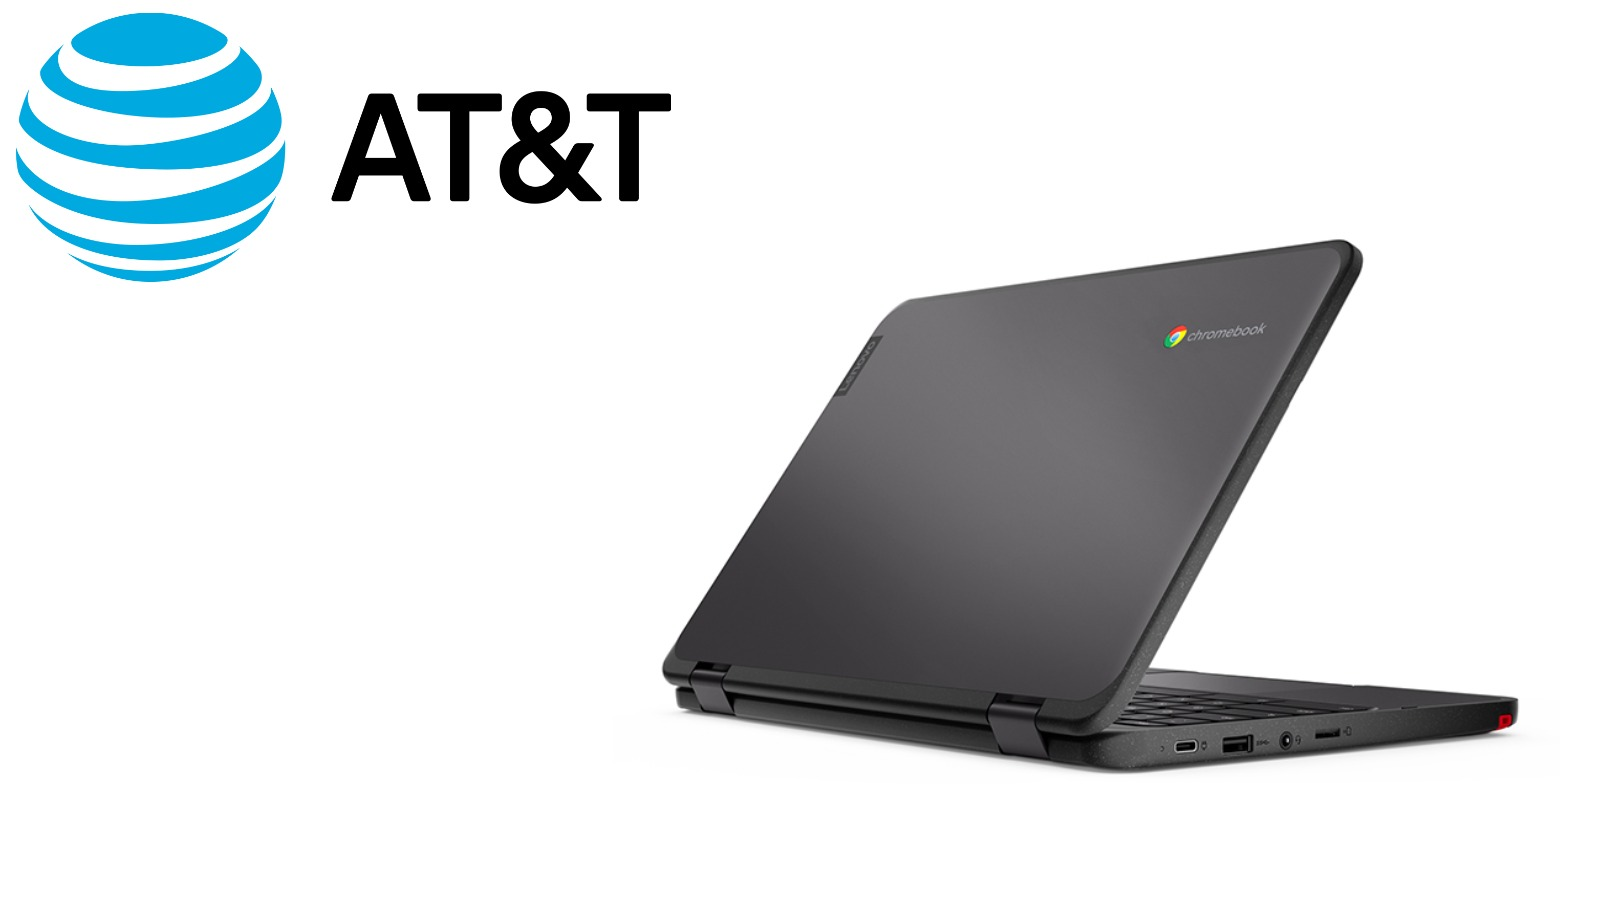 Lenovo launches rugged AMD-powered Chromebook 300e with LTE on AT&T network